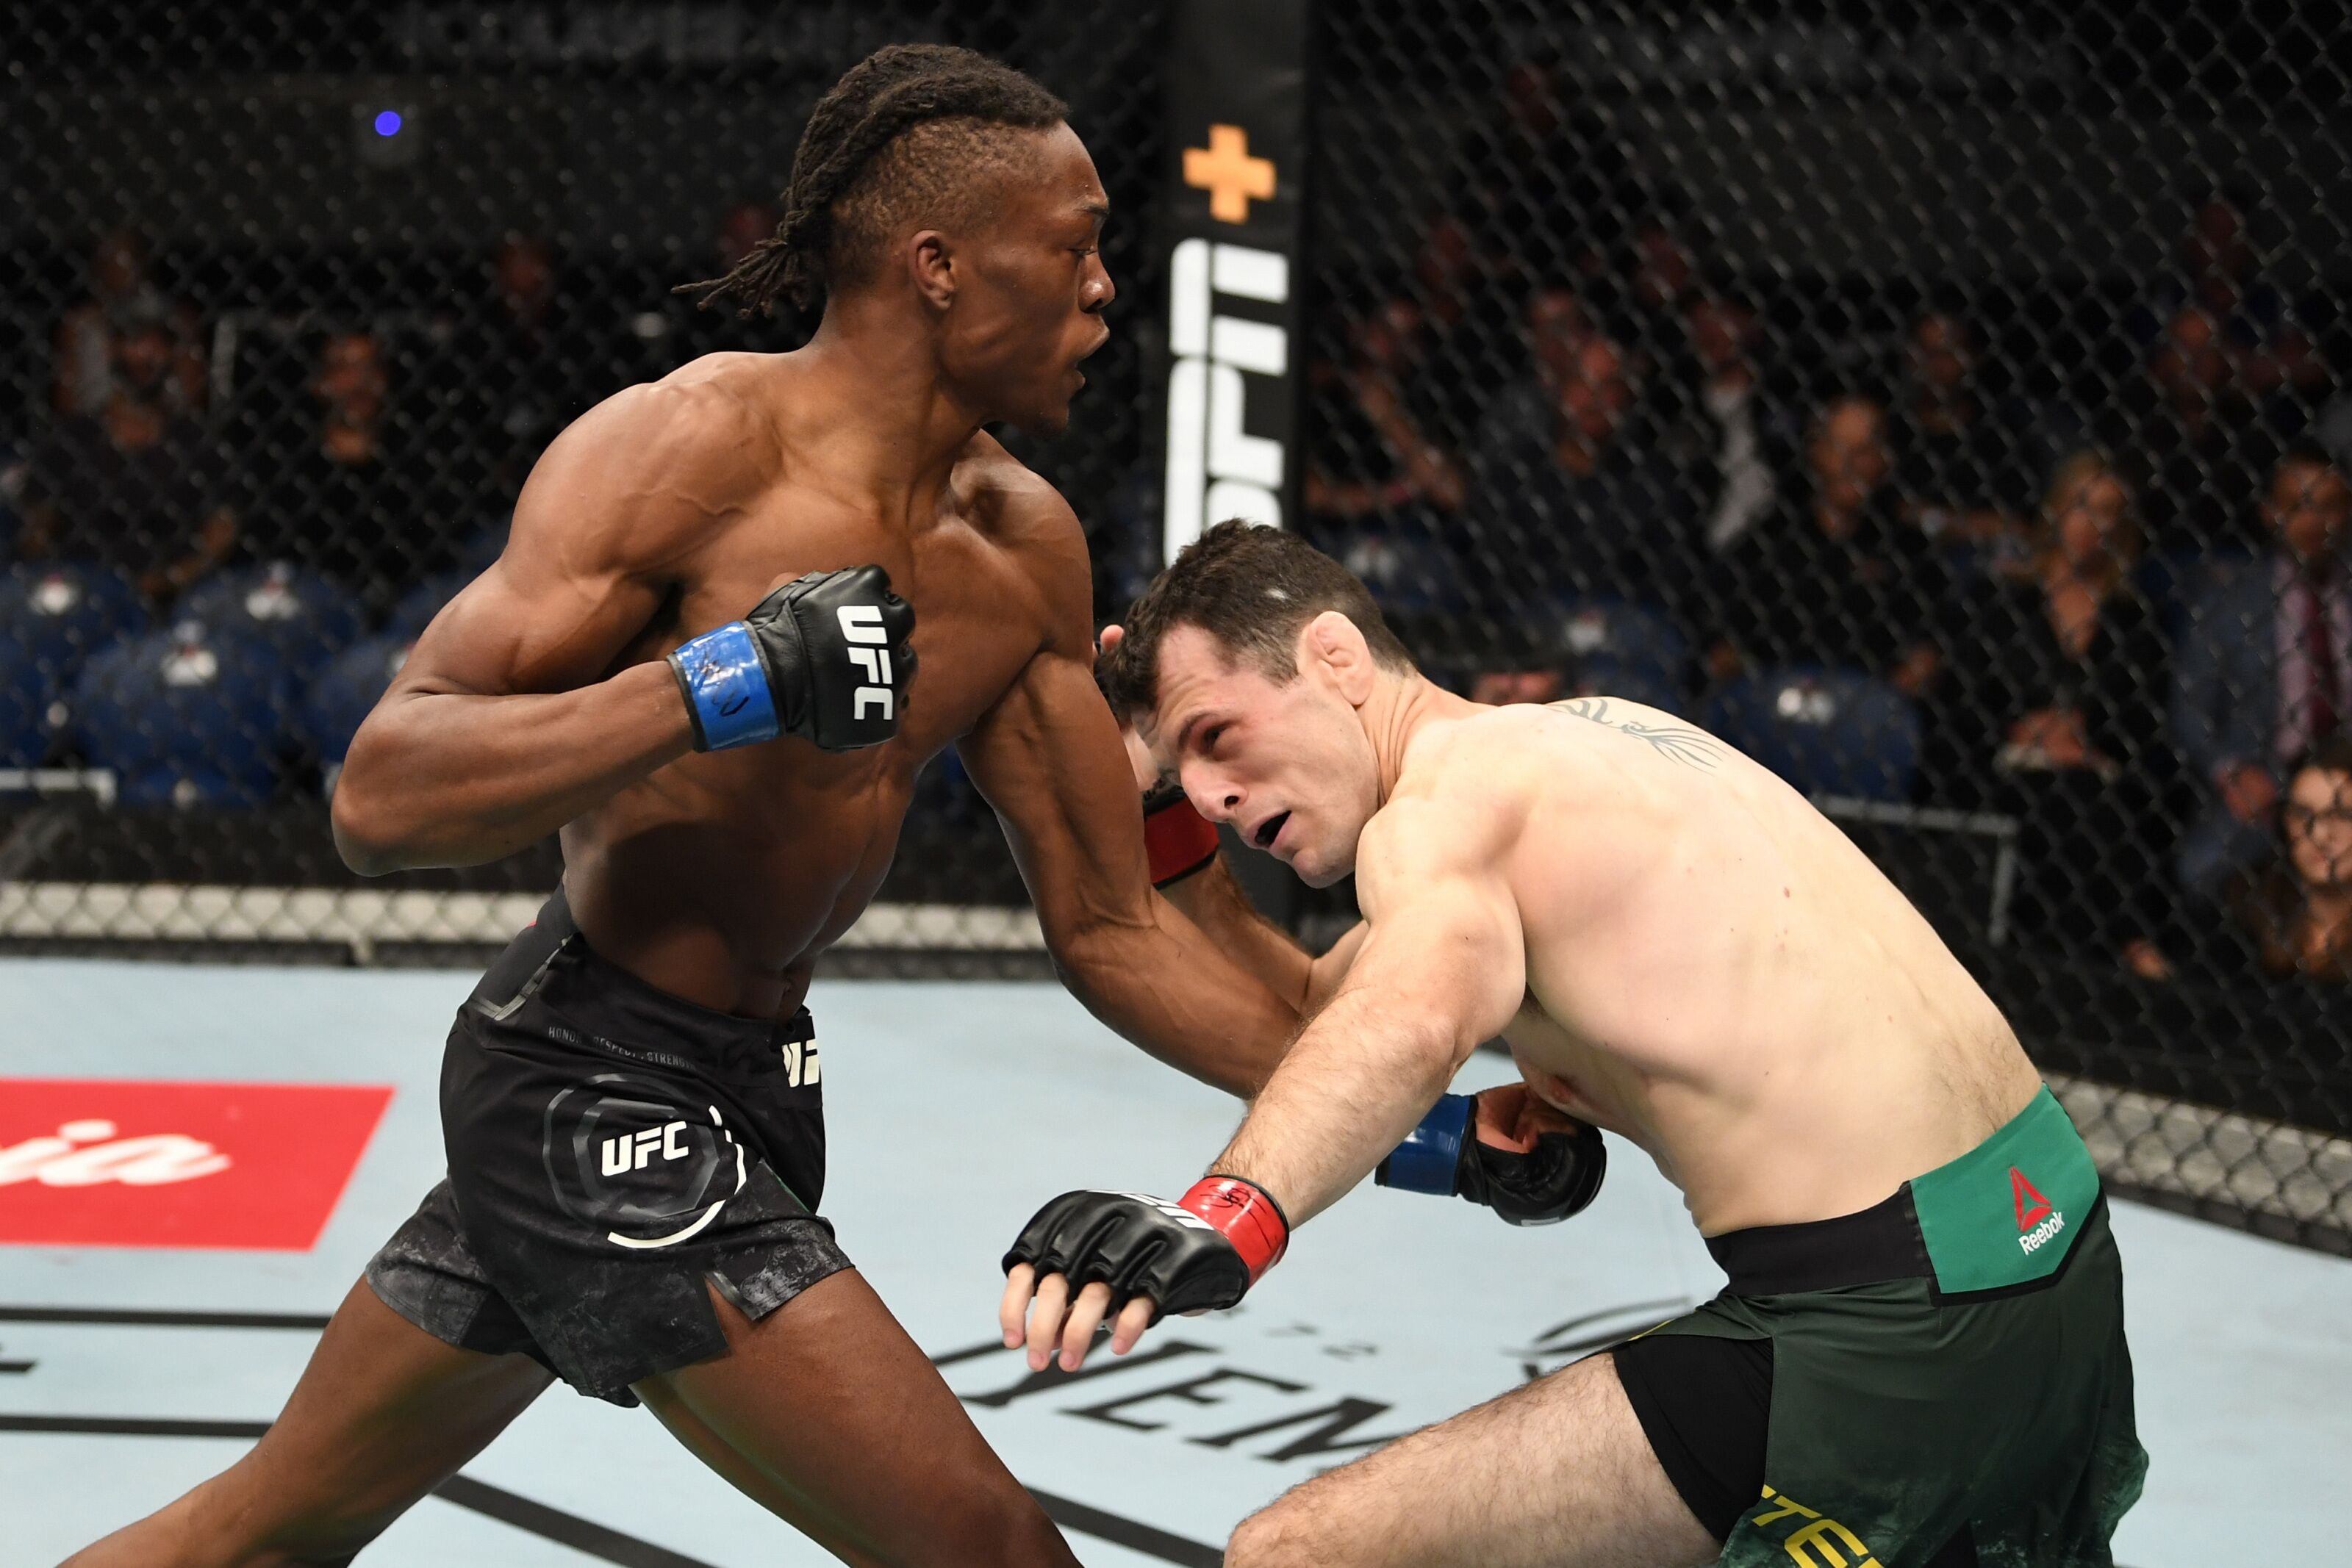 MELBOURNE, AUSTRALIA - FEBRUARY 10: (L-R) Jalin Turner punches Callan Potter of Australia in their lightweight bout during the UFC 234 at Rod Laver Arena on February 10, 2019 in the Melbourne, Australia. (Photo by Jeff Bottari/Zuffa LLC/Zuffa LLC via Getty Images)